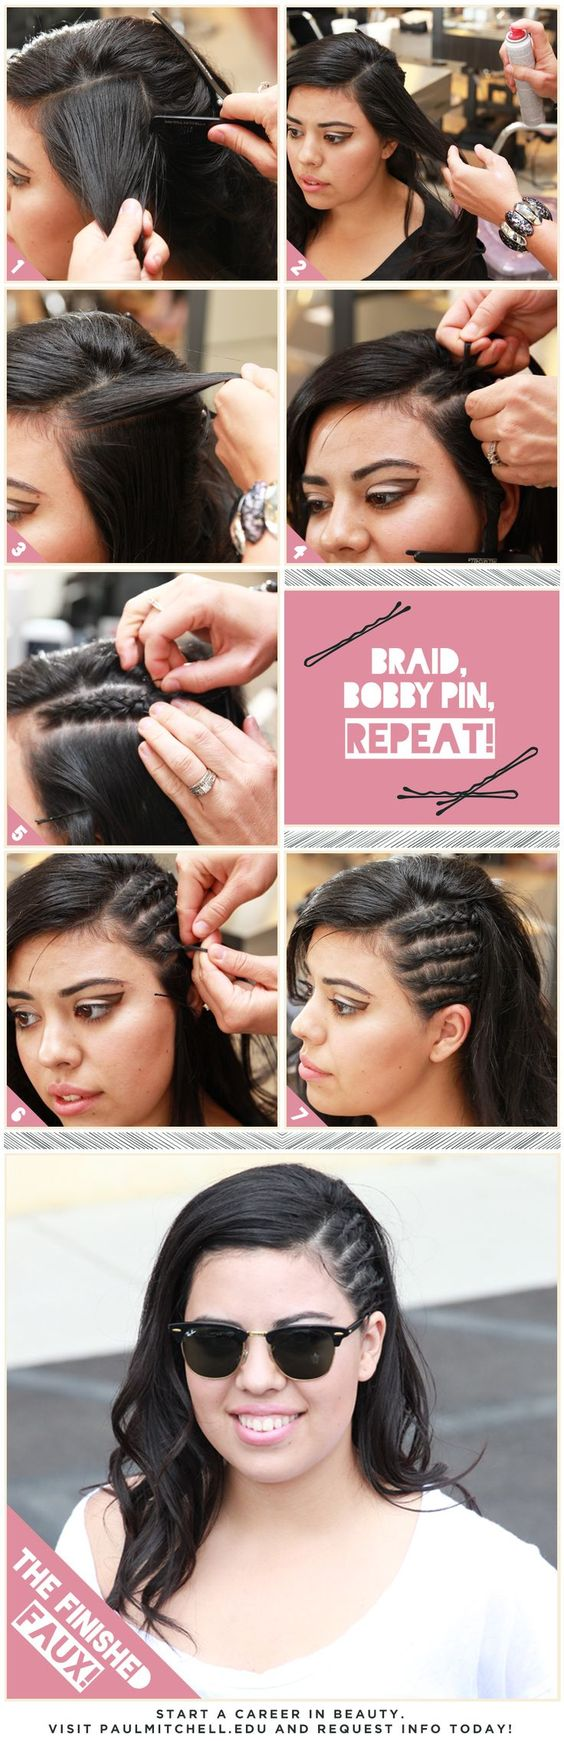 best images about hair and beauty on pinterest purple hair